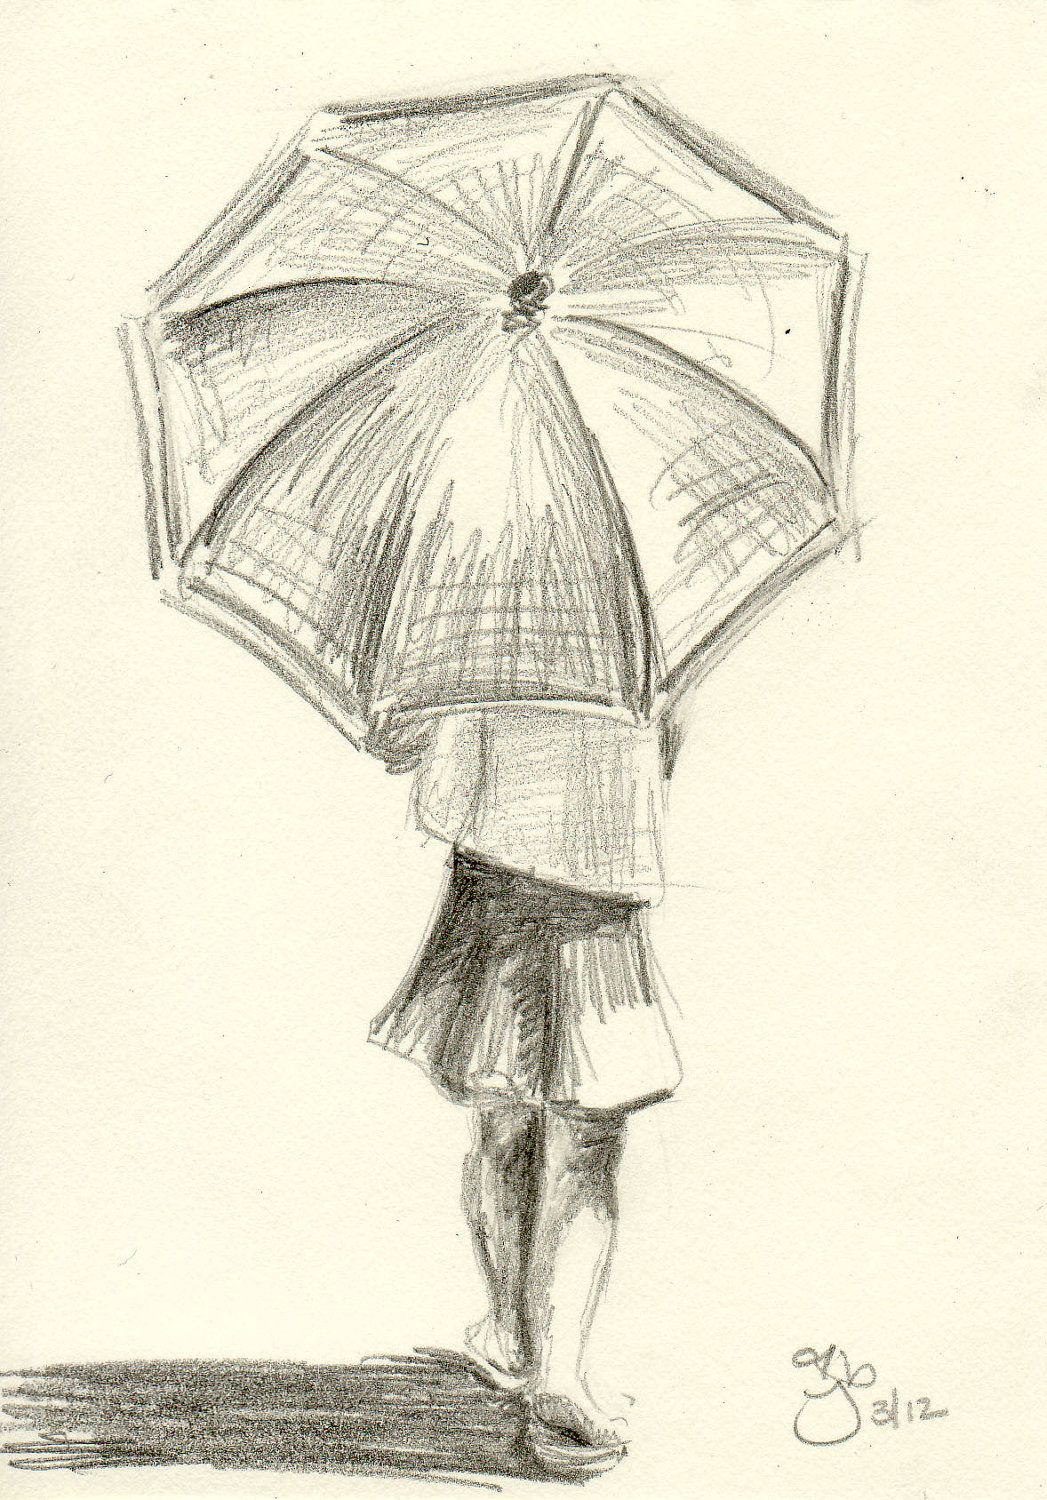 A Girl With Umbrella Pencil Drawing Pencil Sketch